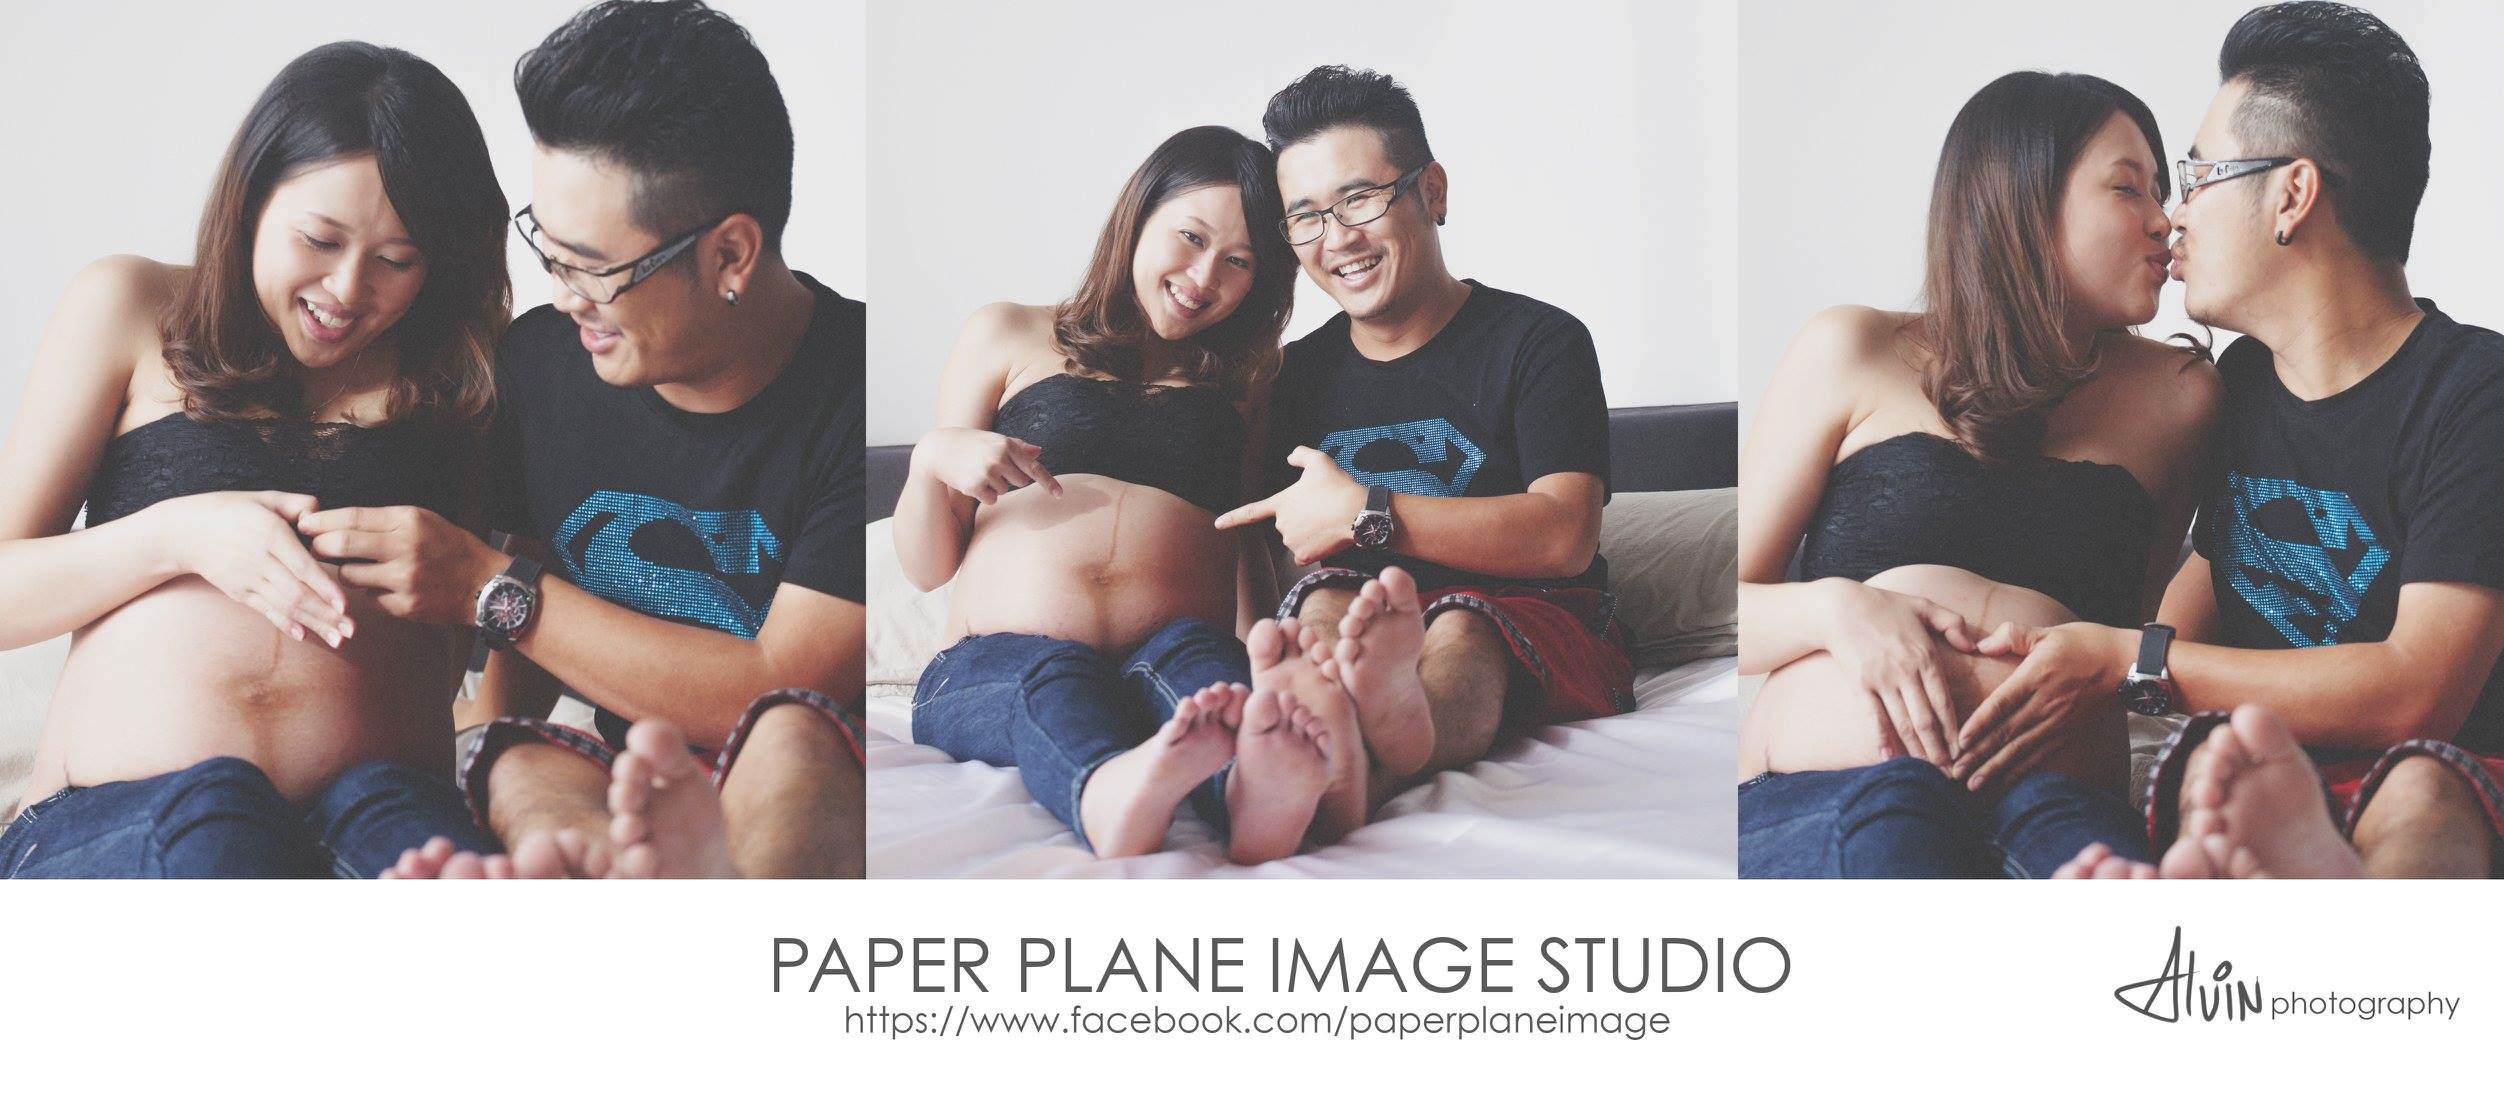 Pregnancy Photography, Maternity Photography, Malaysia Pregnancy Photography, Malaysia Maternity Photography, Pregnancy Studio Photography, Maternity Studio Photography, Beautiful Maternity Photography, Beautiful Pregnancy Photography, Professional Pregnancy Photographer, Professional Pregnancy Photography, Professional Maternity Photography, Professional Maternity Photographer, Pregnancy Portraits Photography, Maternity Portraits Photography, Portraits Photographer, Malaysia Photographer, Maternity Malaysia Photographer, Pregnancy Malaysia Photographer